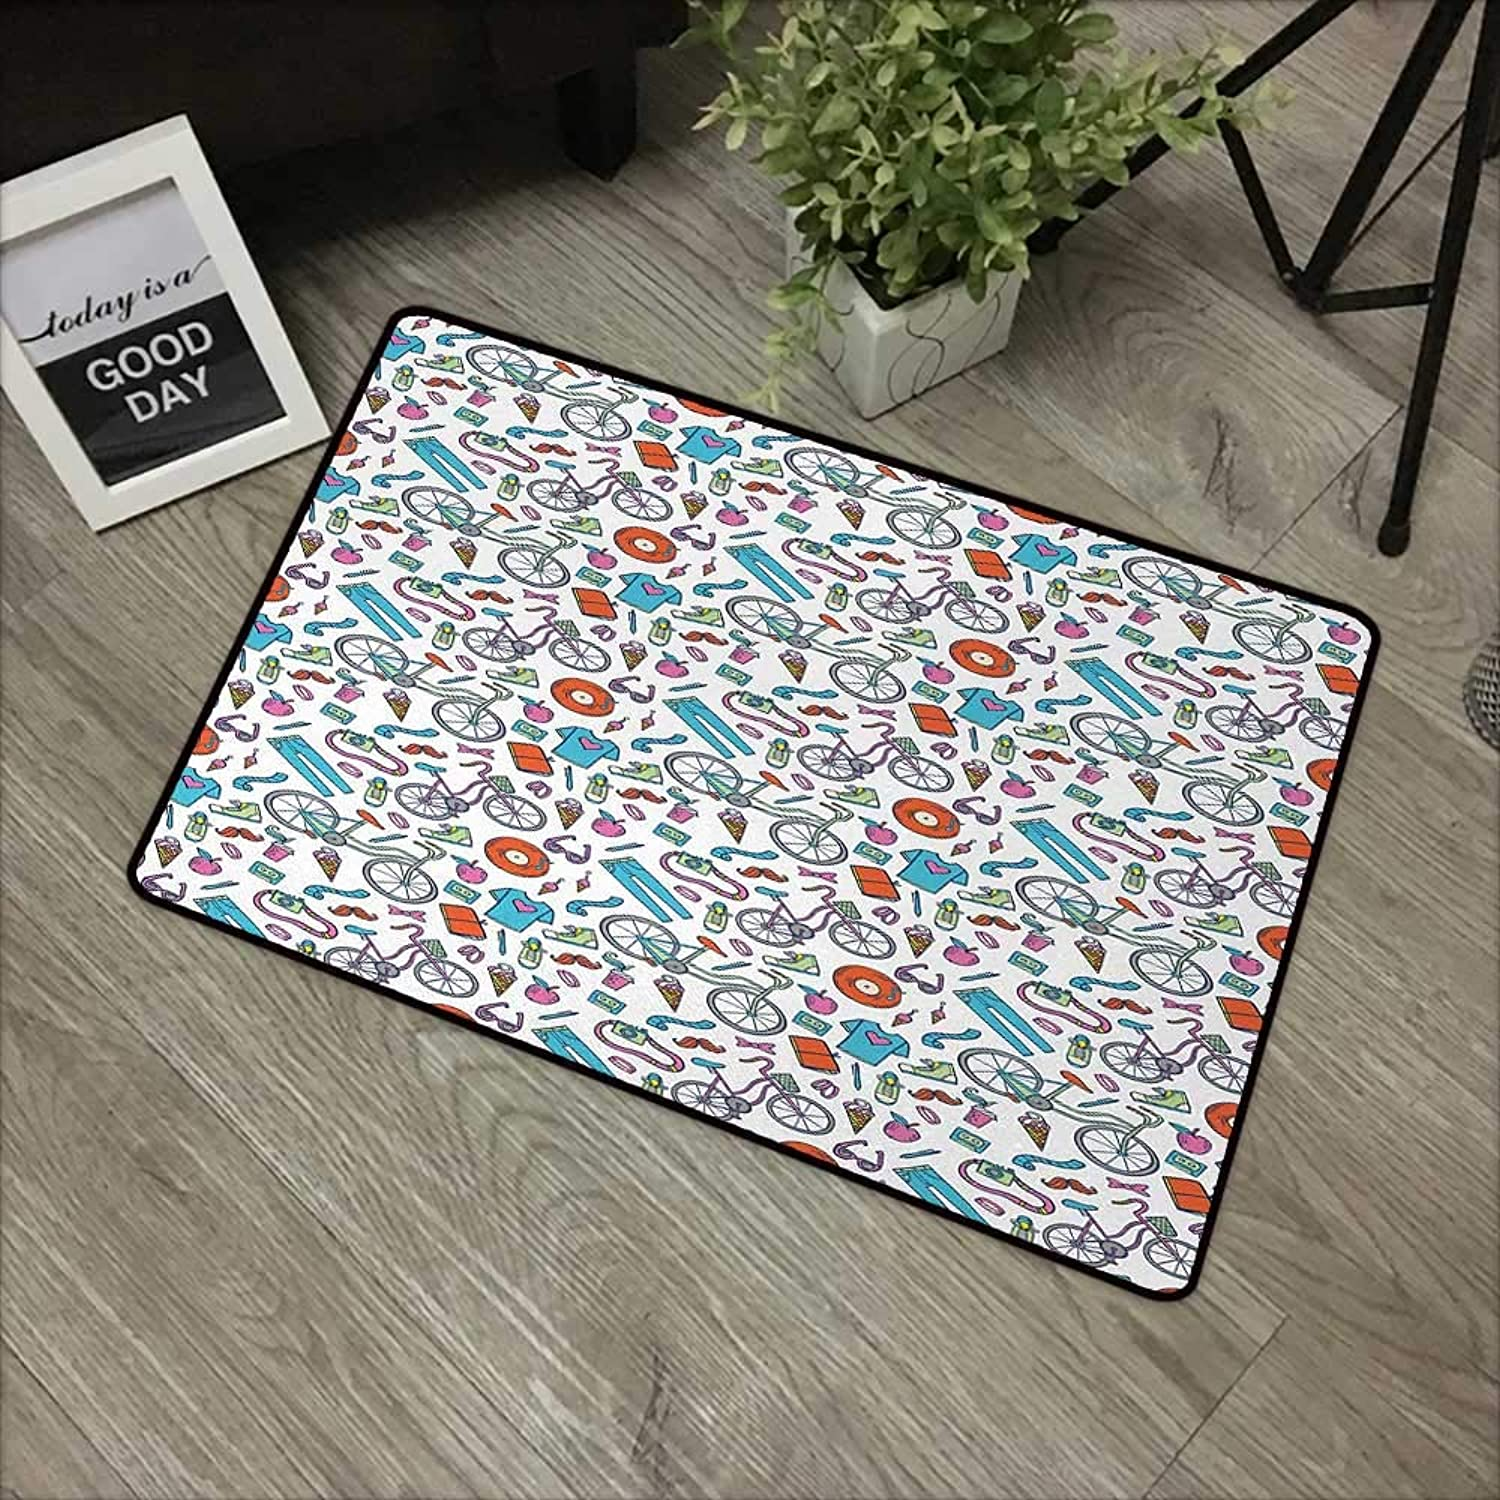 Pool Anti-Slip Door mat W35 x L59 INCH Bicycle,Hipster Lifestyle Objects of Bicycle Camera Vinyl Record Ice-Cream Apple Moustache,Multicolor with Non-Slip Backing Door Mat Carpet